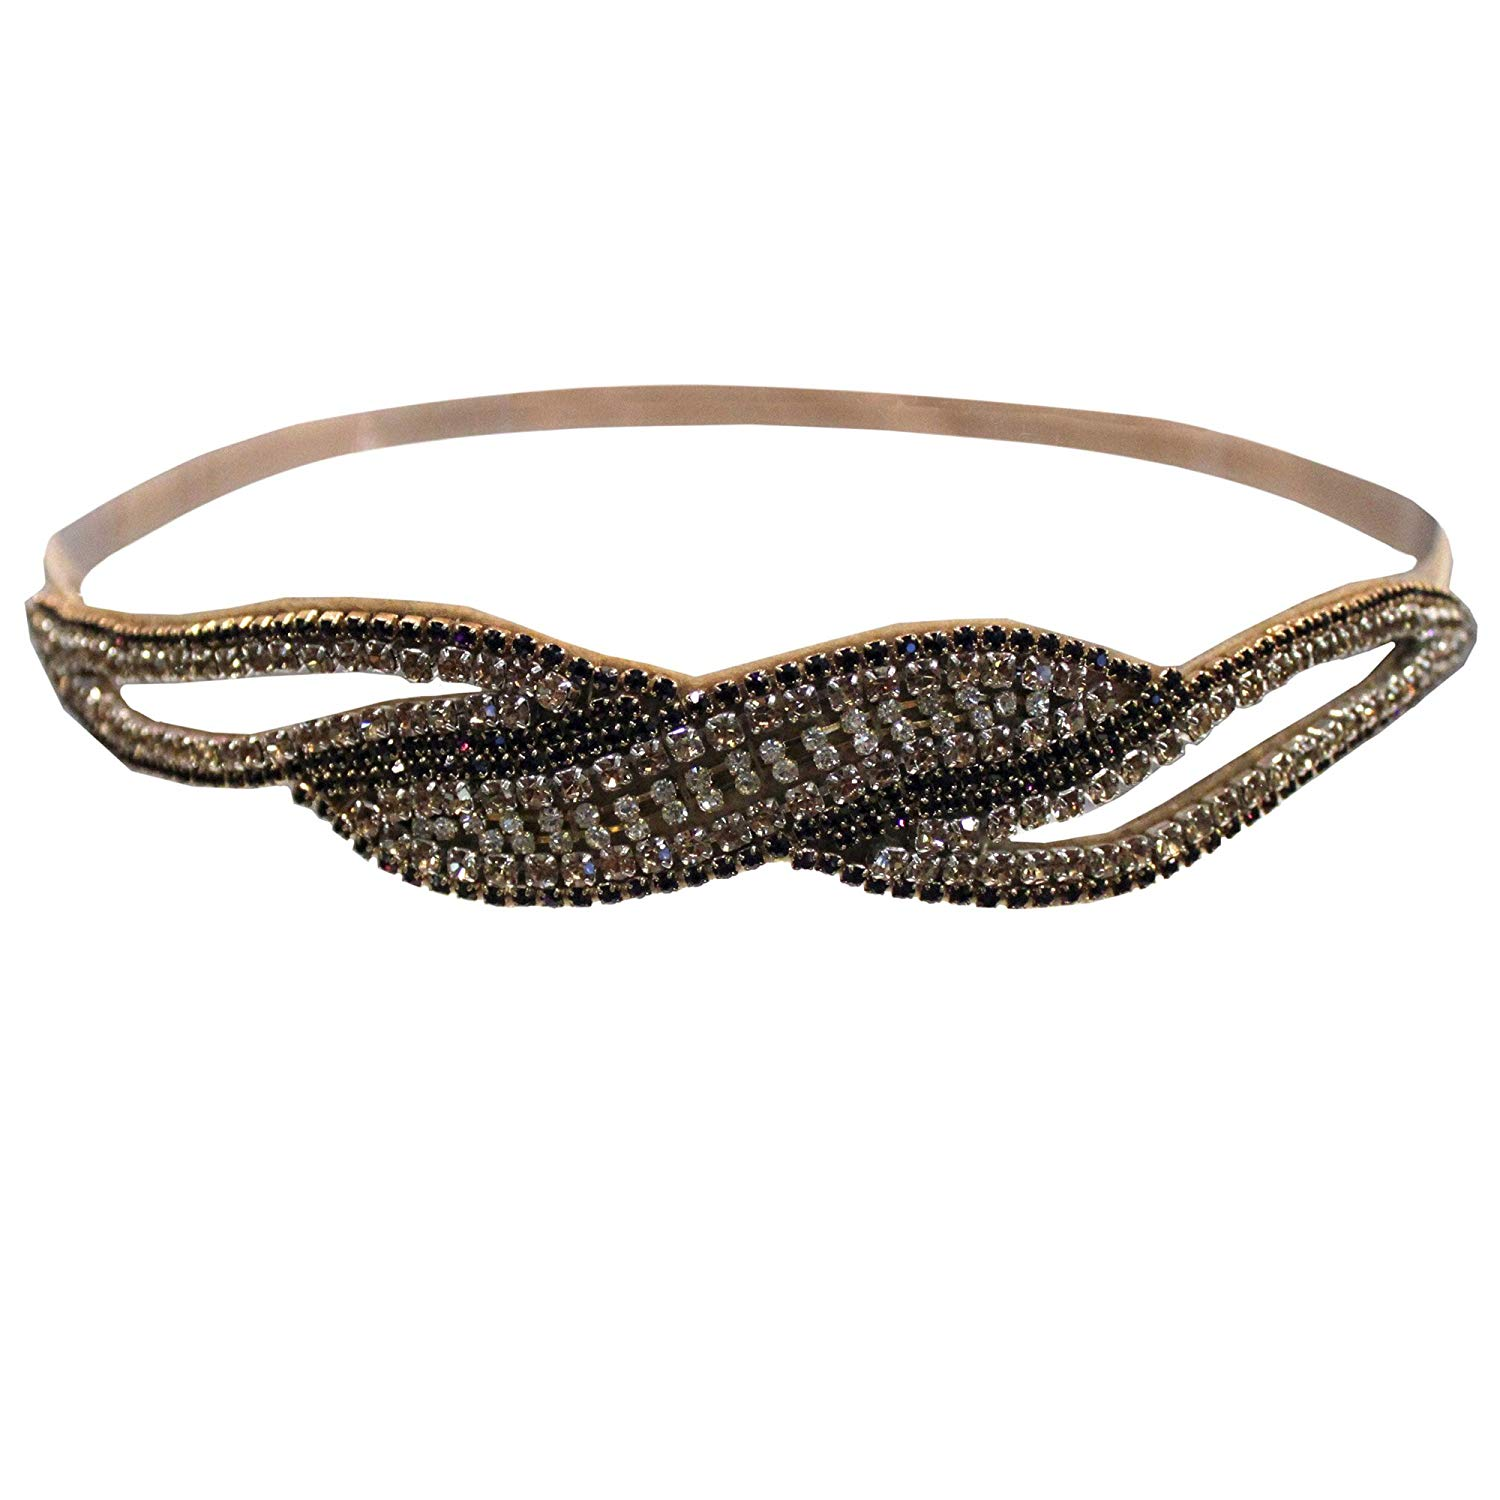 Mia Embellished Headband, Chocolate Brown, Bronze, Gold And Purple Pretty Sparkly Rhinestones, Velvet Backing, AED79.91